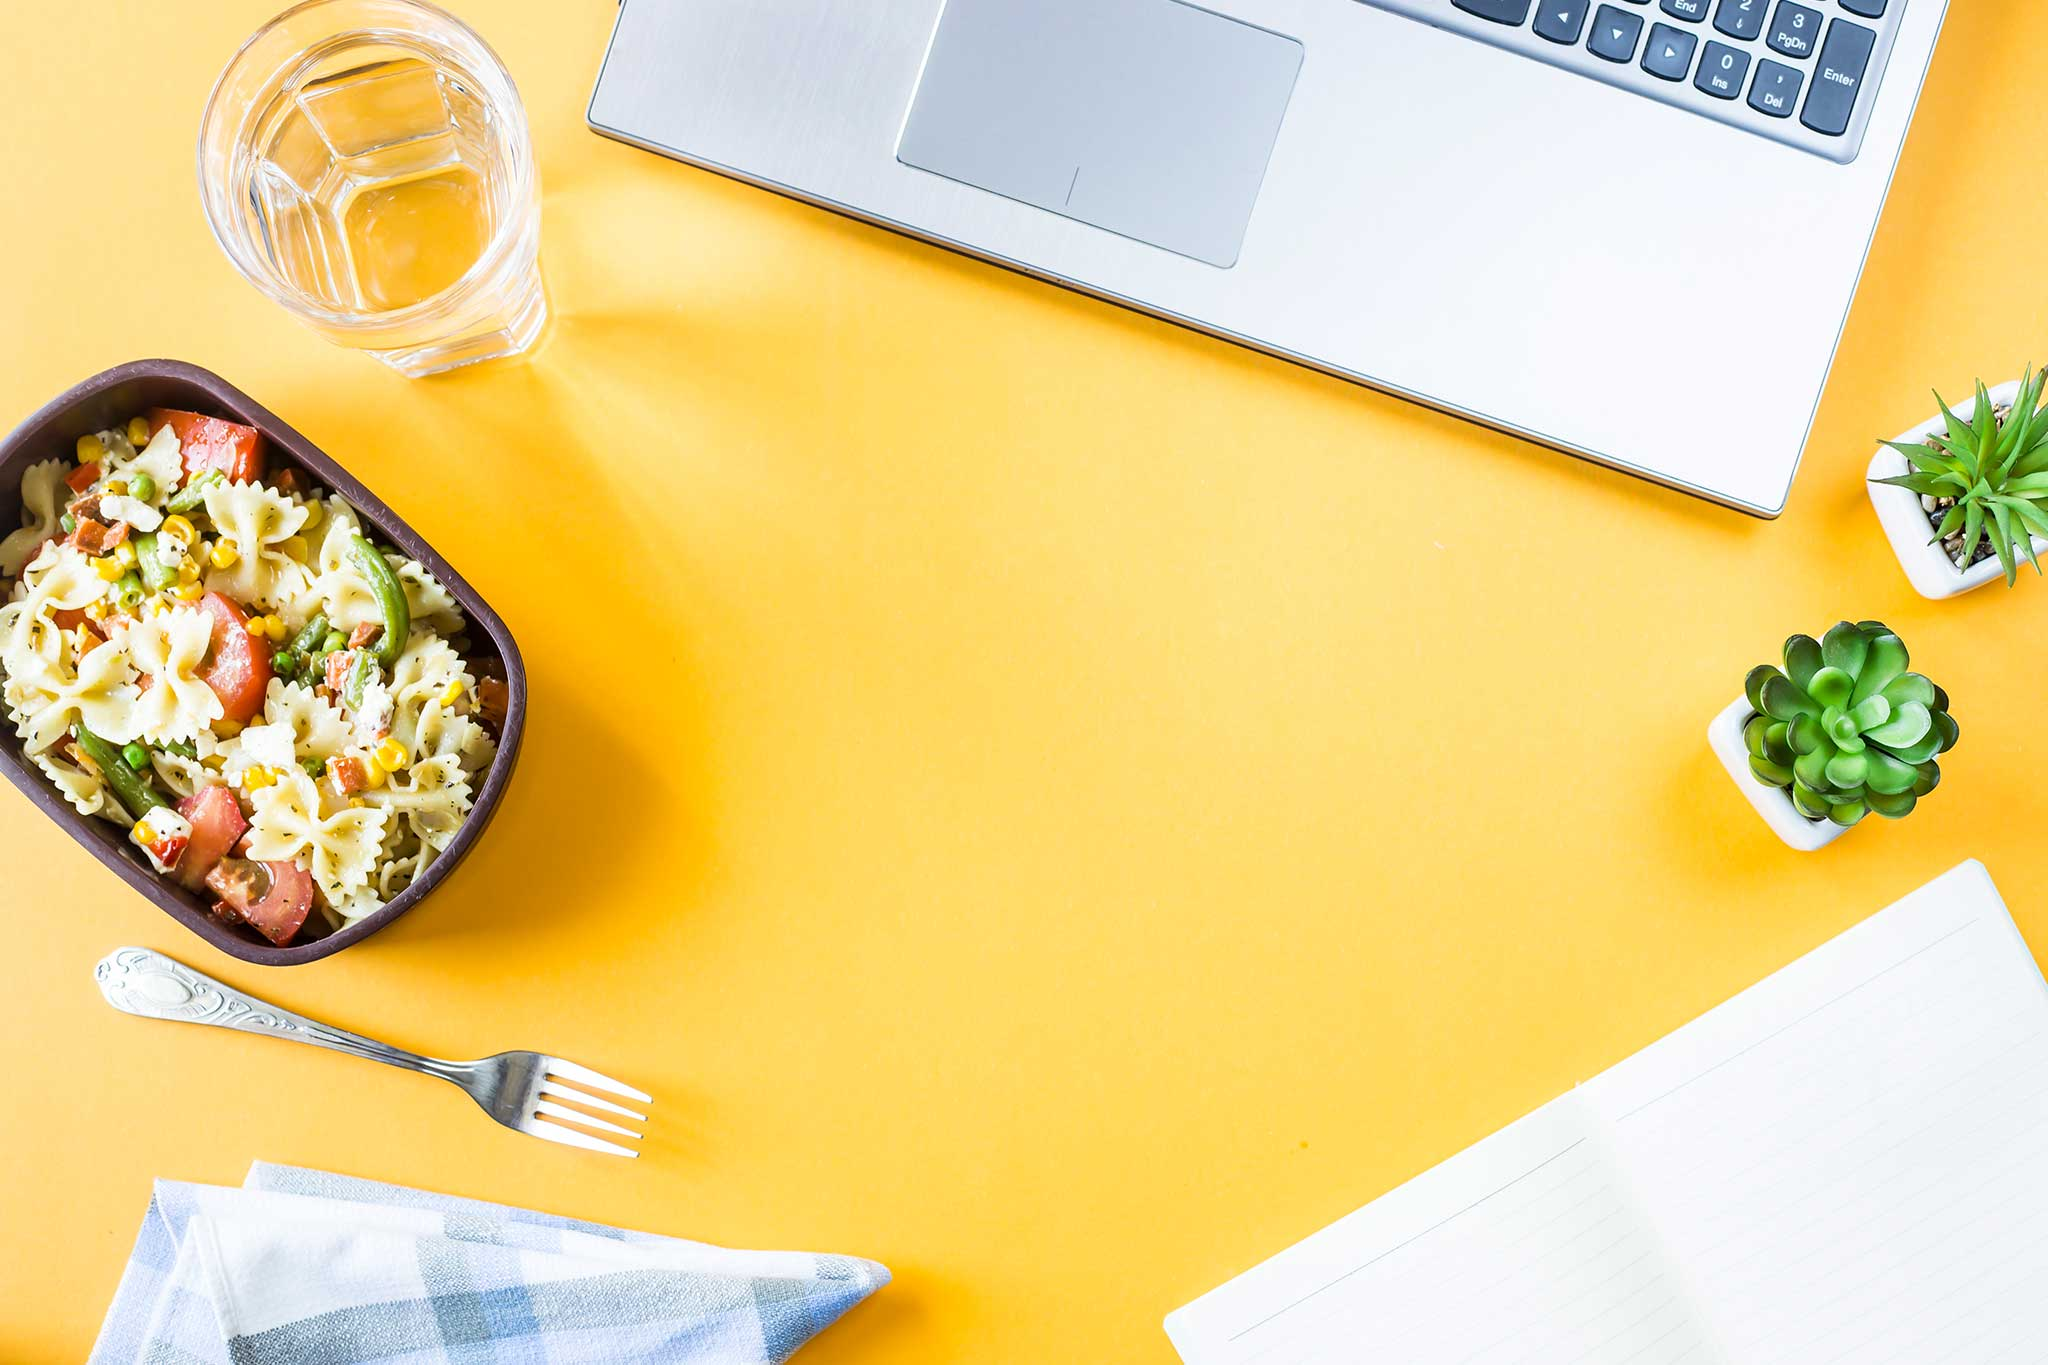 Meal planning tips for ordering office lunch